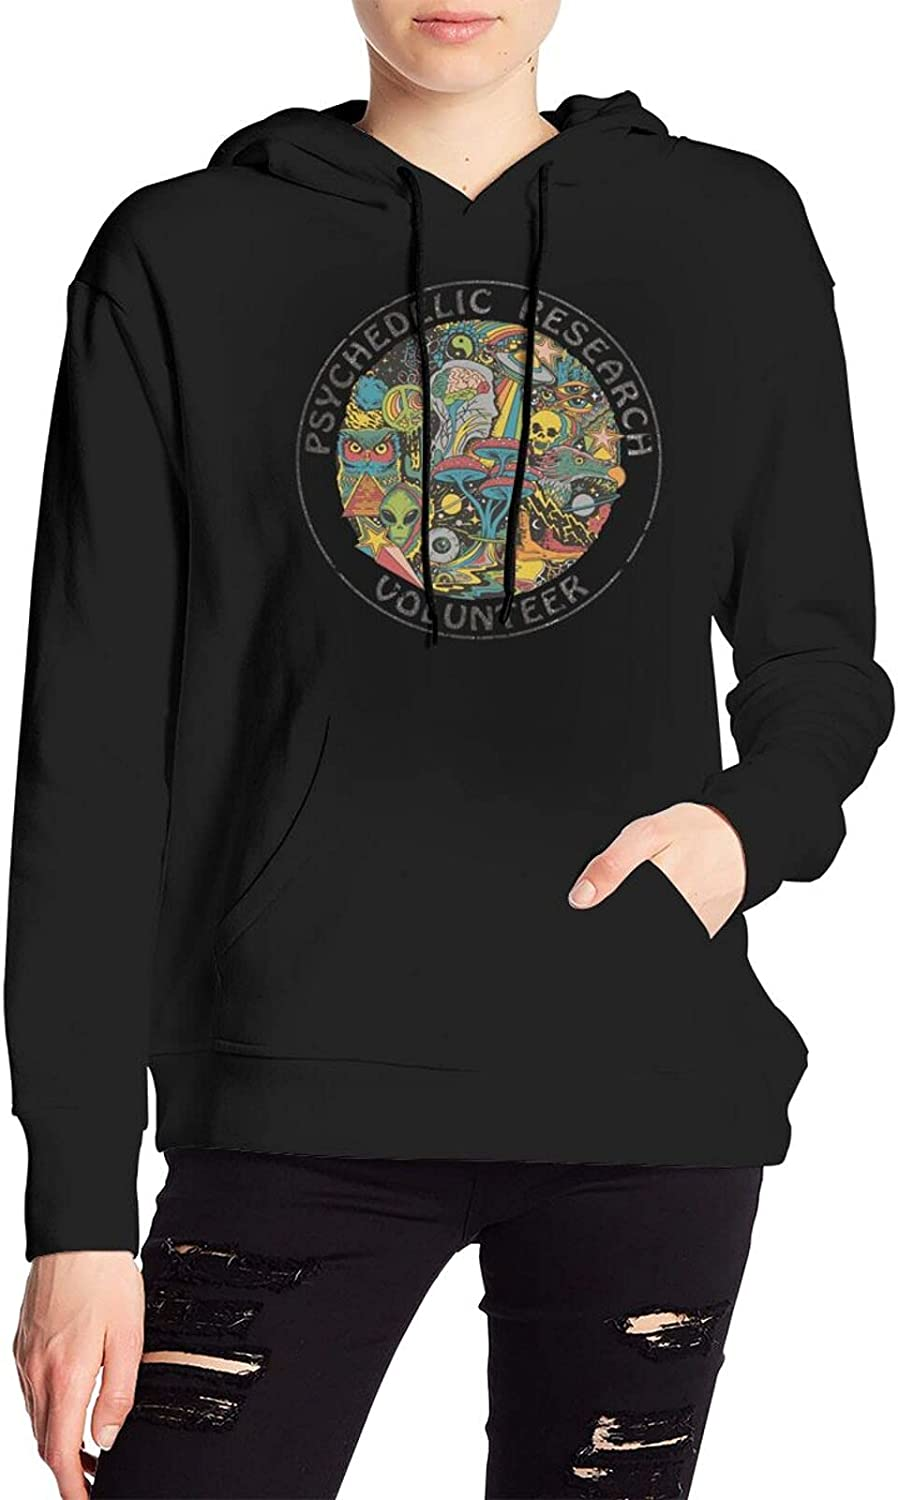 Psychedelic Research Volunteer Big Sweater Casual Pullover With Pocket For Men Women'S